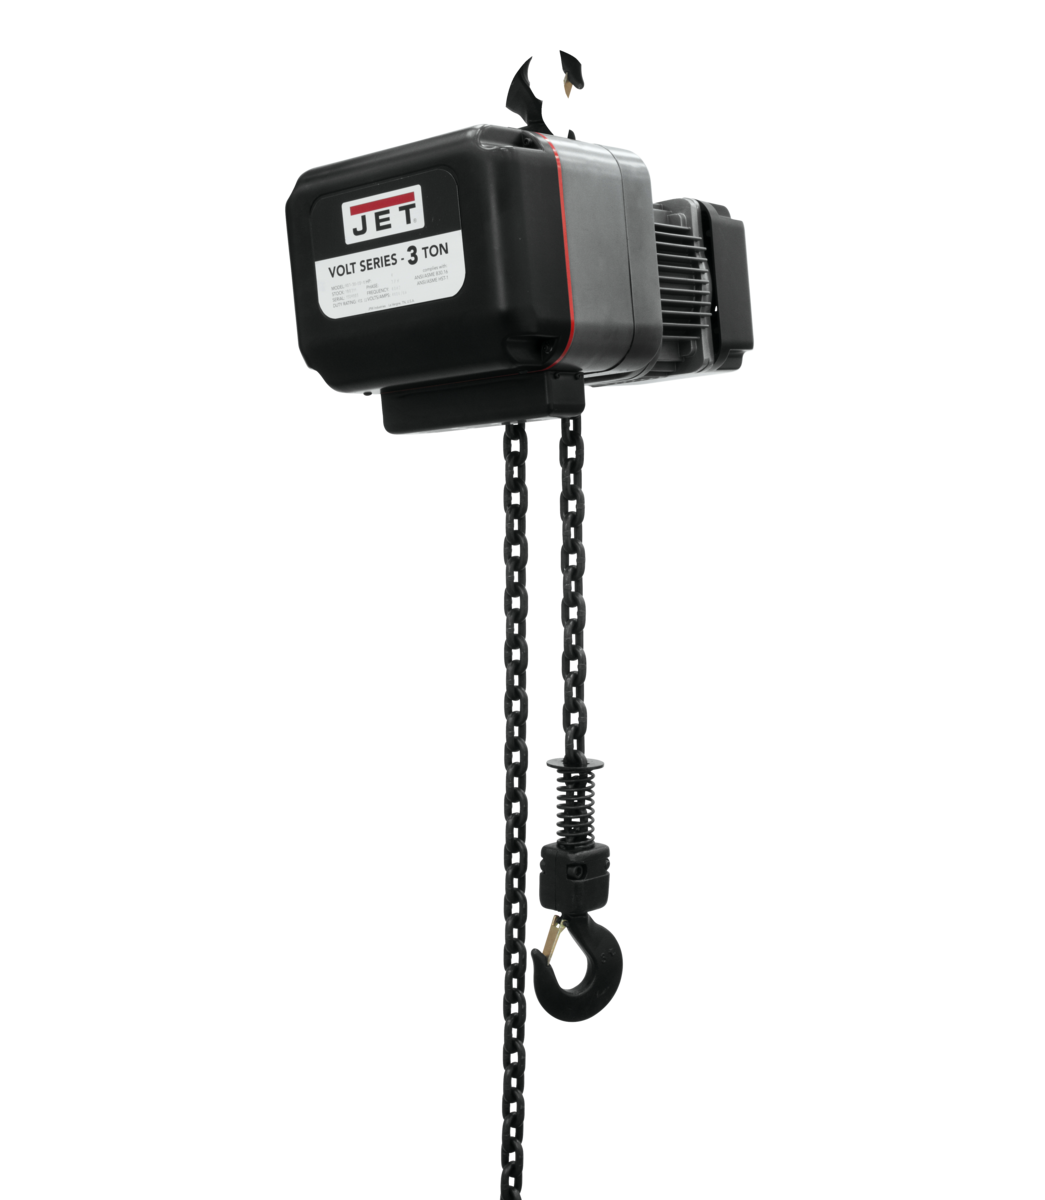 VOLT 3T VARIABLE-SPEED ELECTRIC HOIST  3PH 230V 20' LIFT